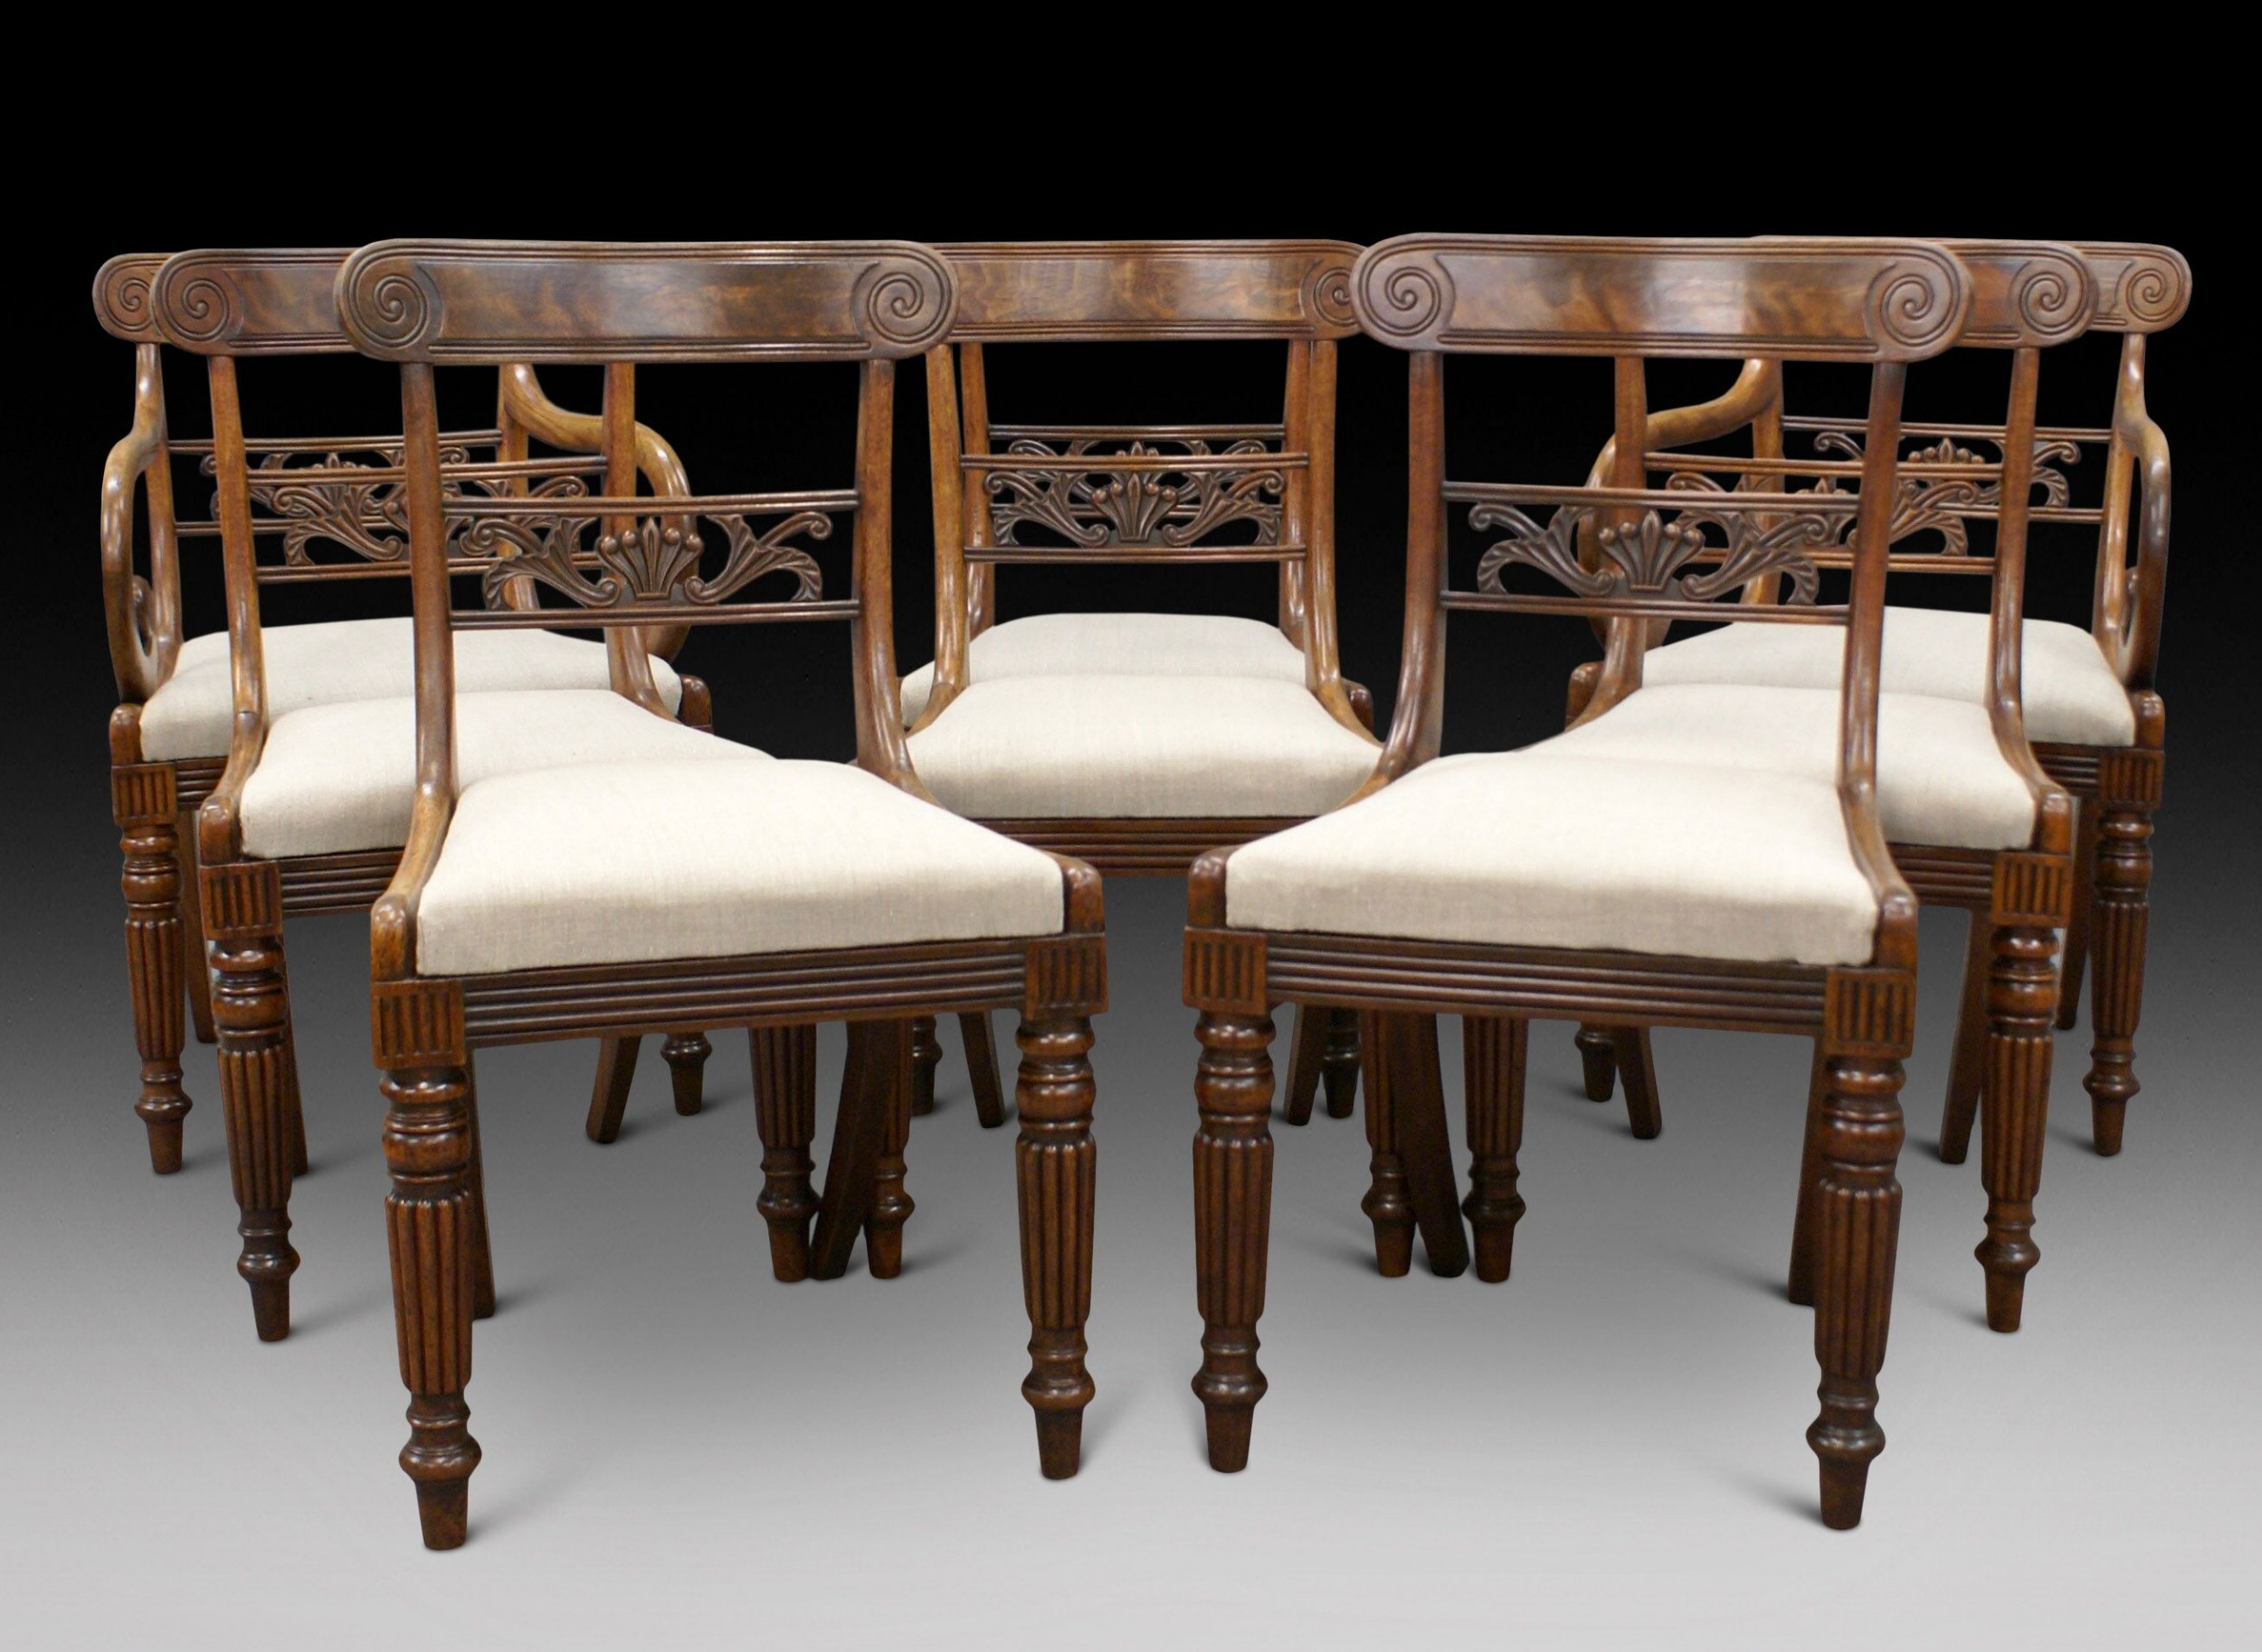 a fine set of 8 scottish regency dining chairs